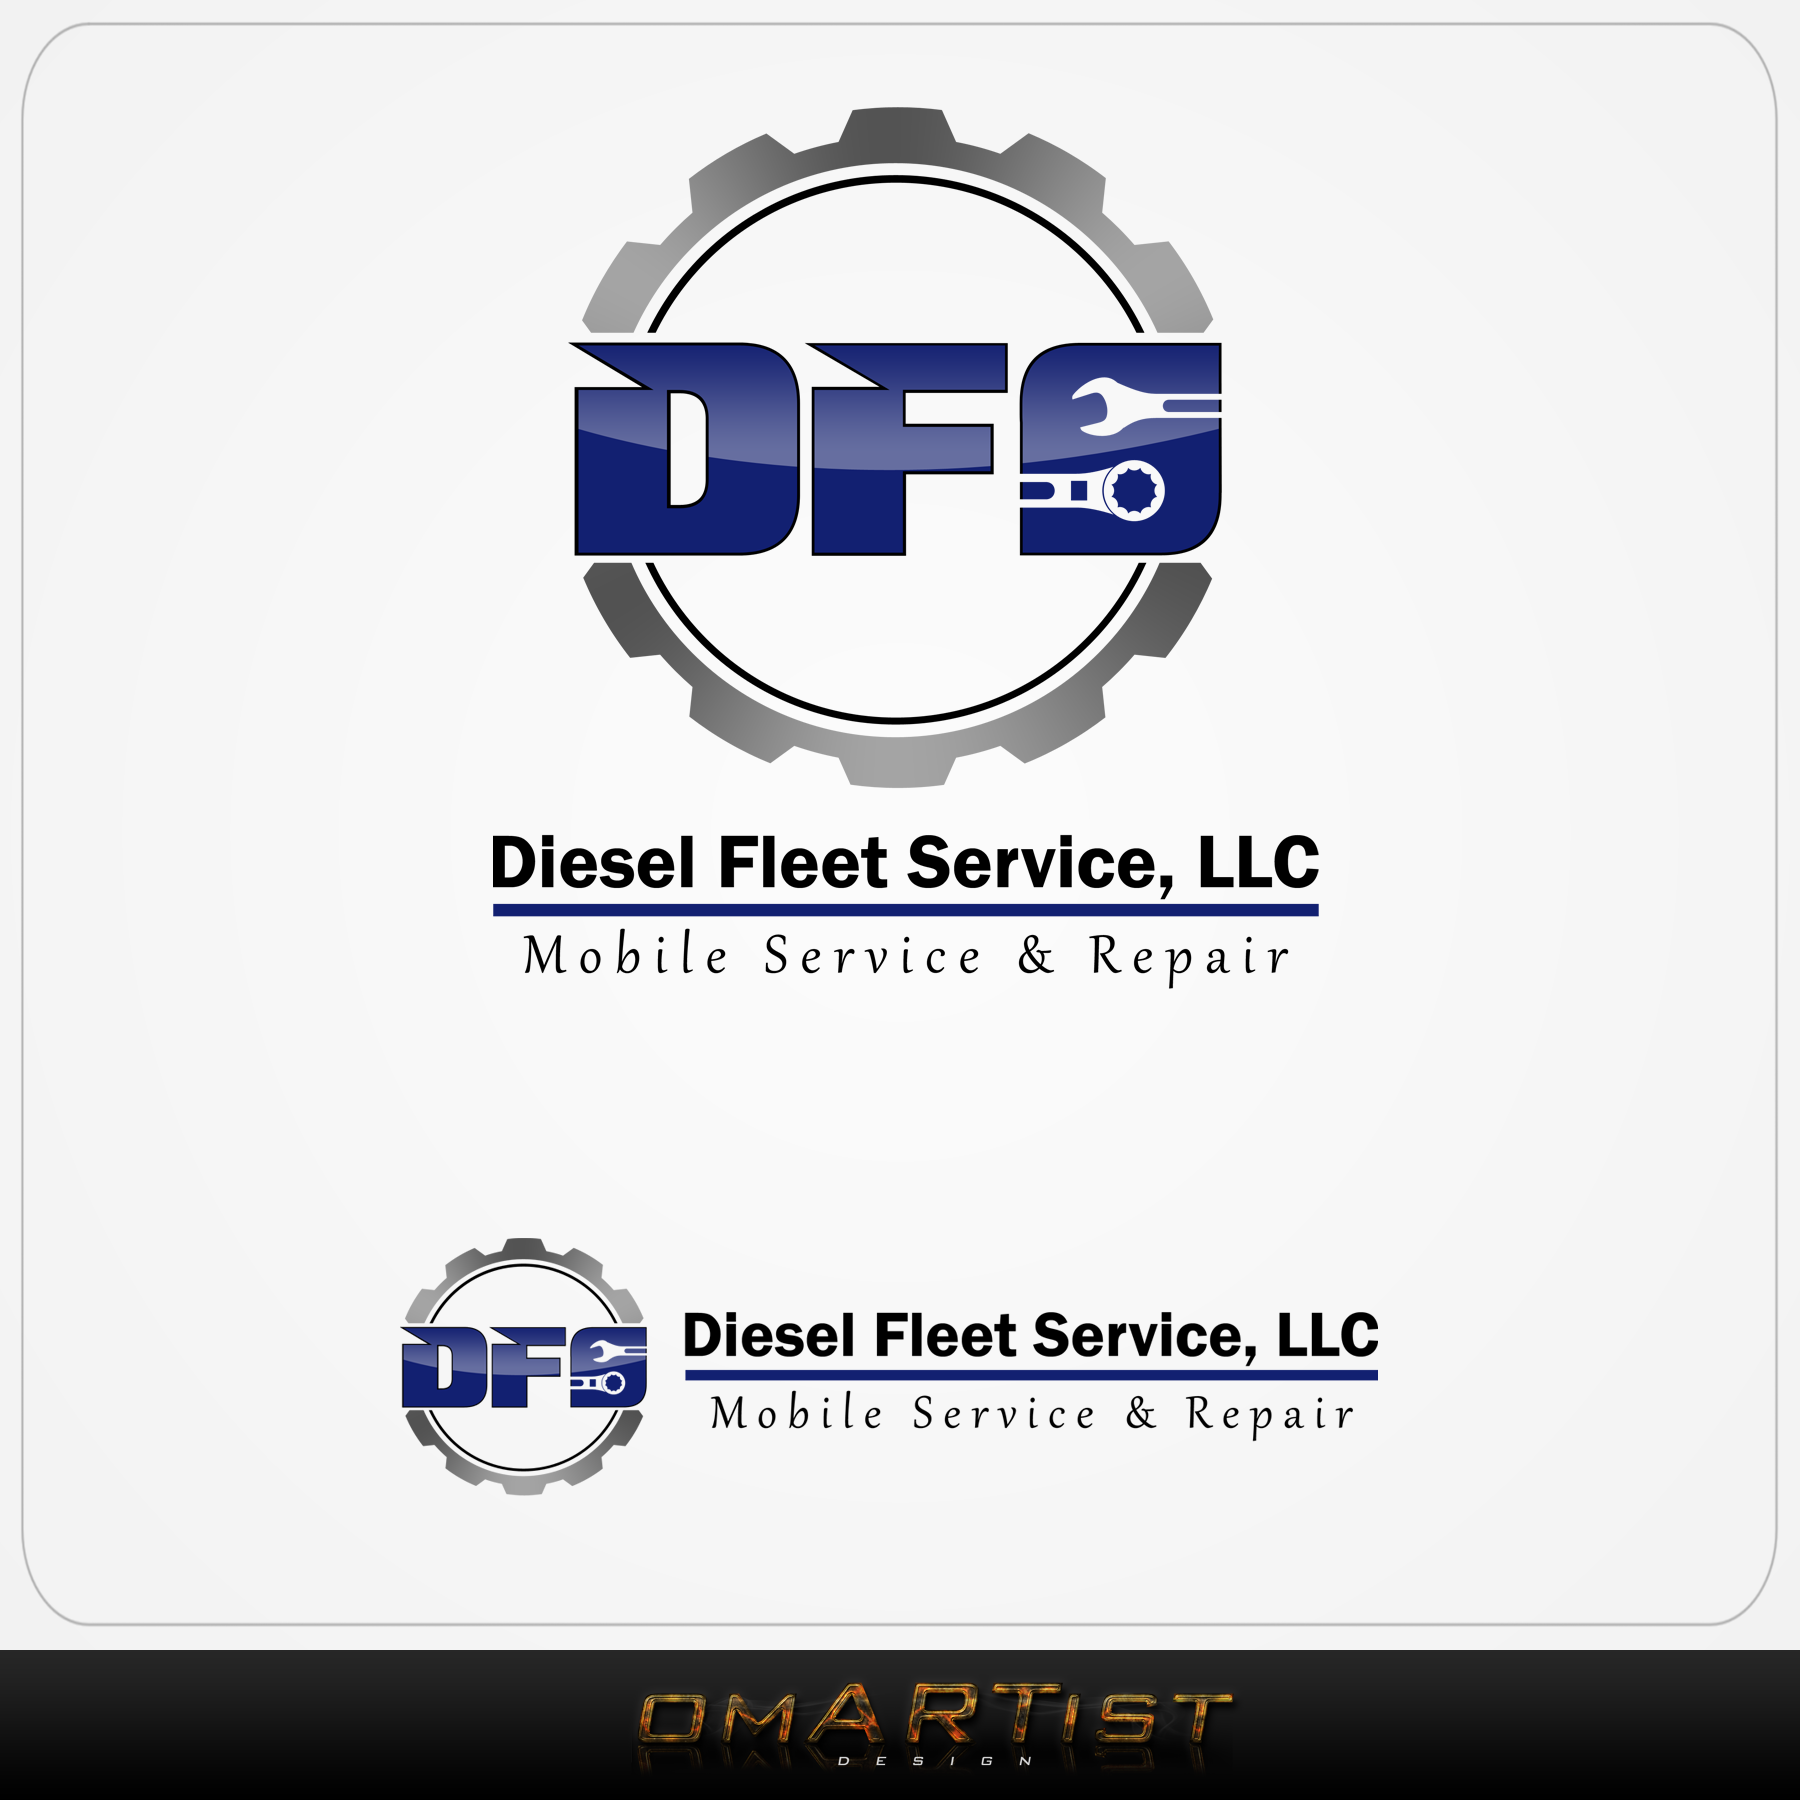 Logo Design by omARTist - Entry No. 27 in the Logo Design Contest Artistic Logo Design for Diesel Fleet Service, LLC.